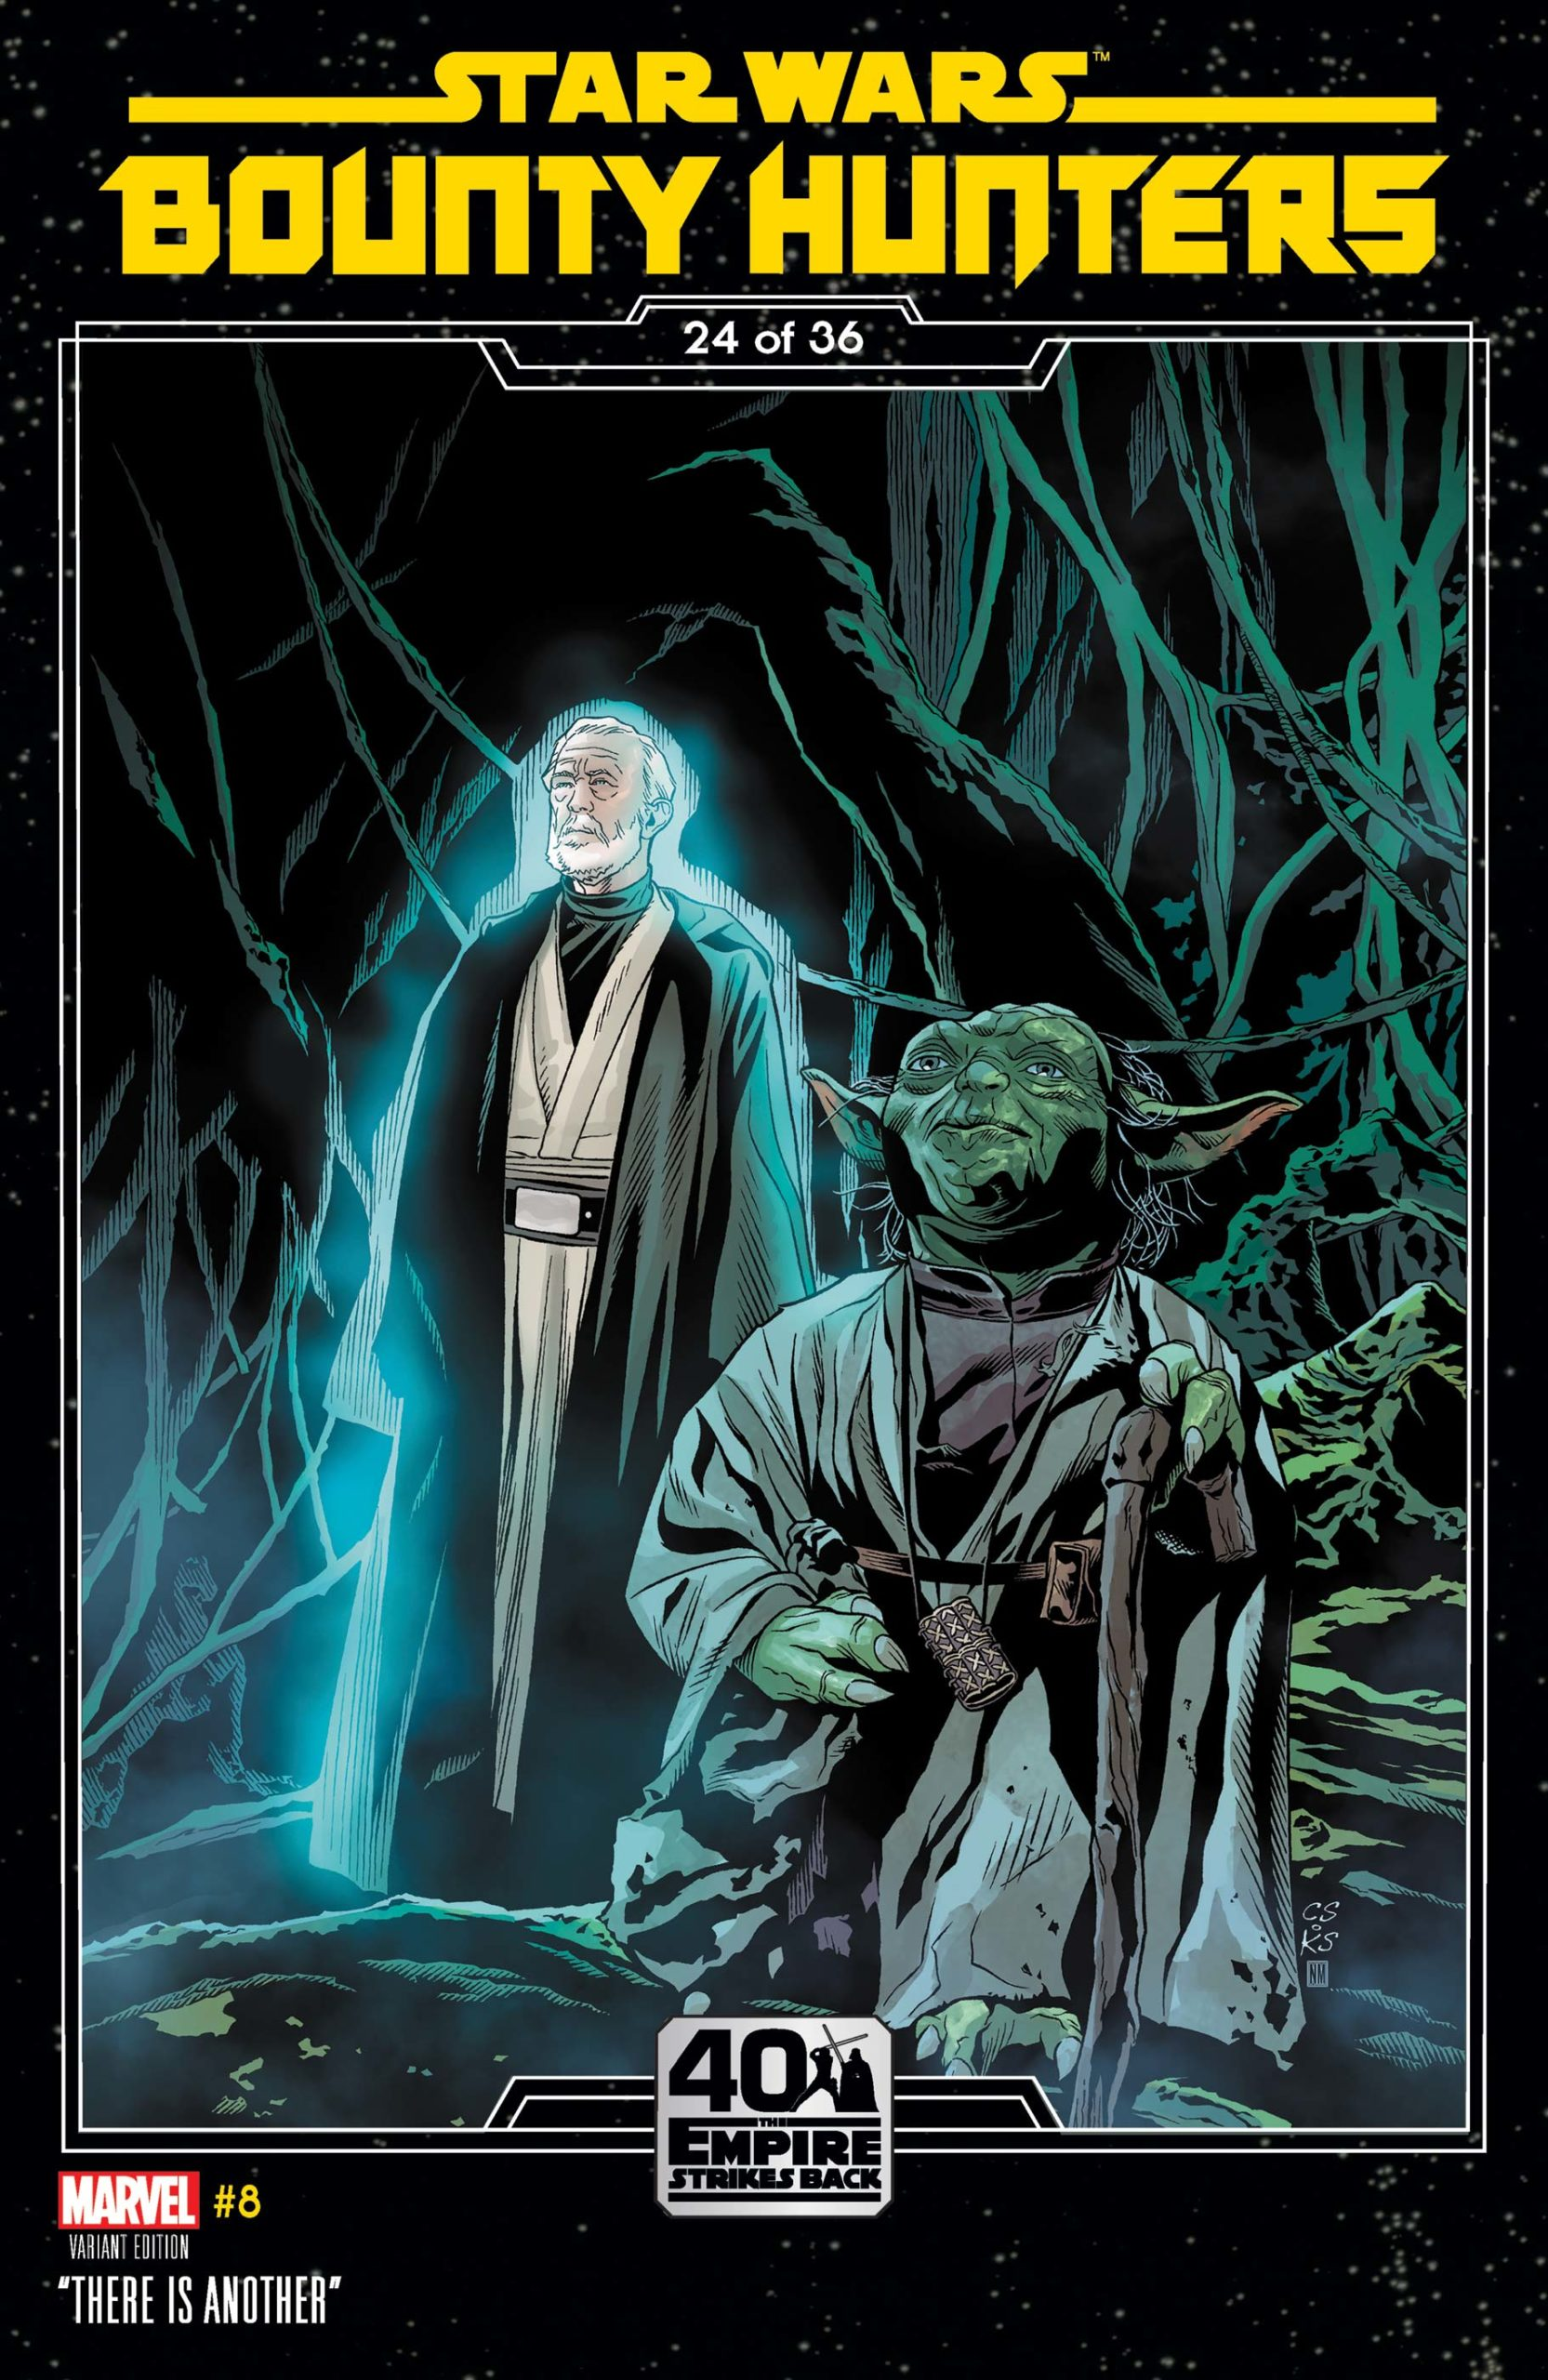 Bounty Hunters #8 (Chris Sprouse The Empire Strikes Back Variant Cover 24 of 36) (23.12.2020)